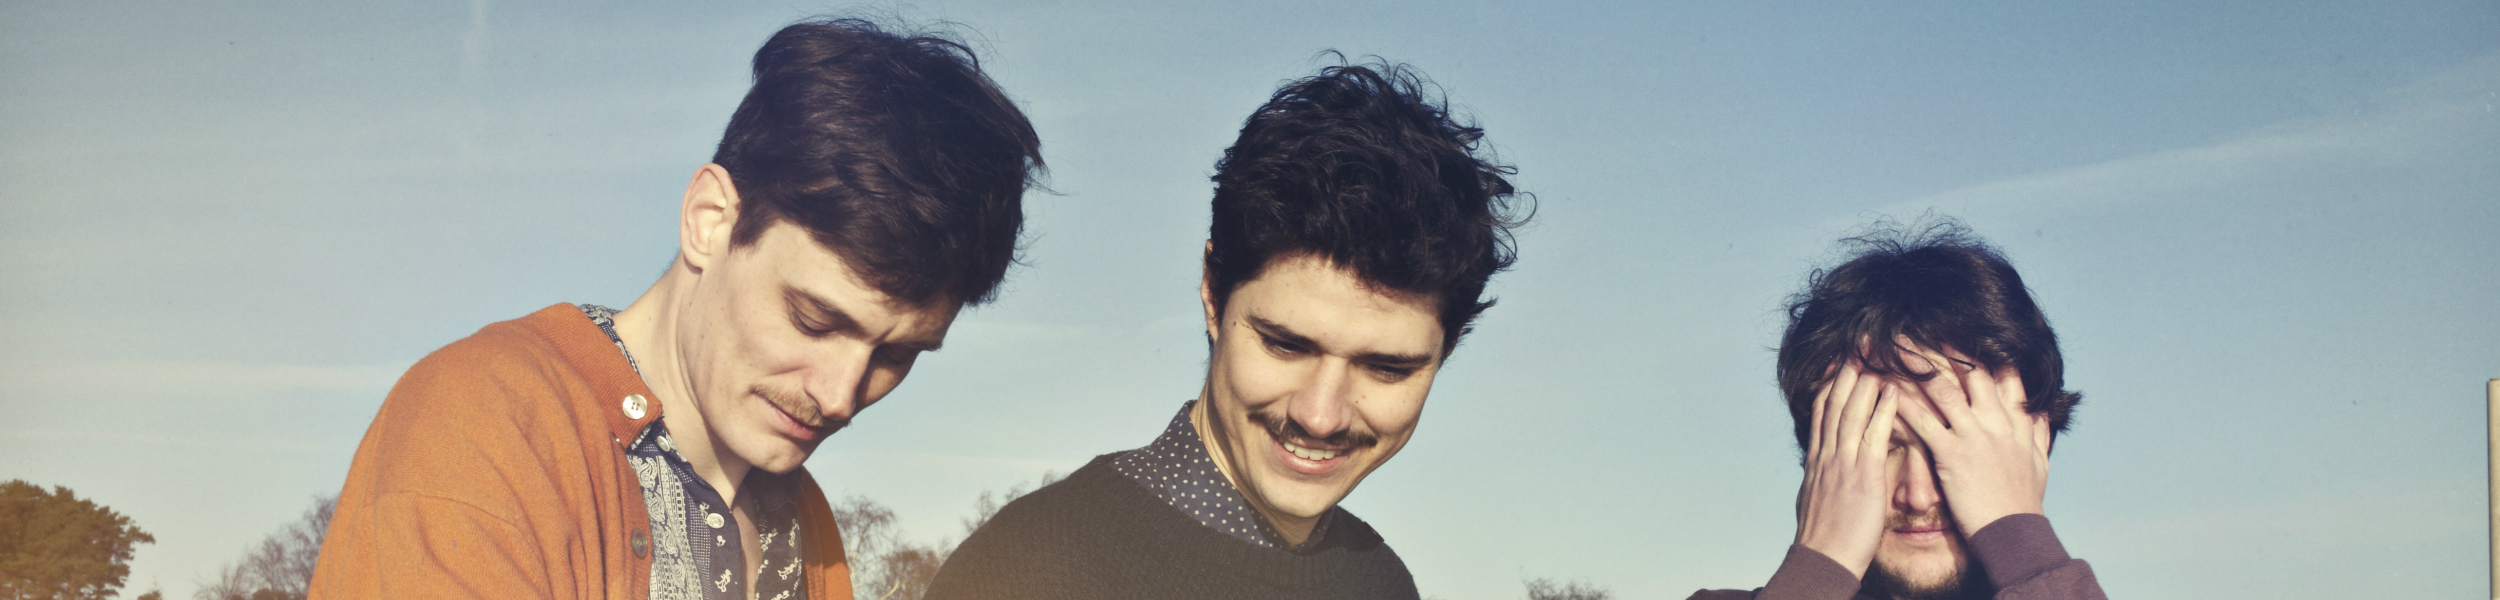 Efterklang - Listen To A New Efterklang Song, 'Hollow Mountain'